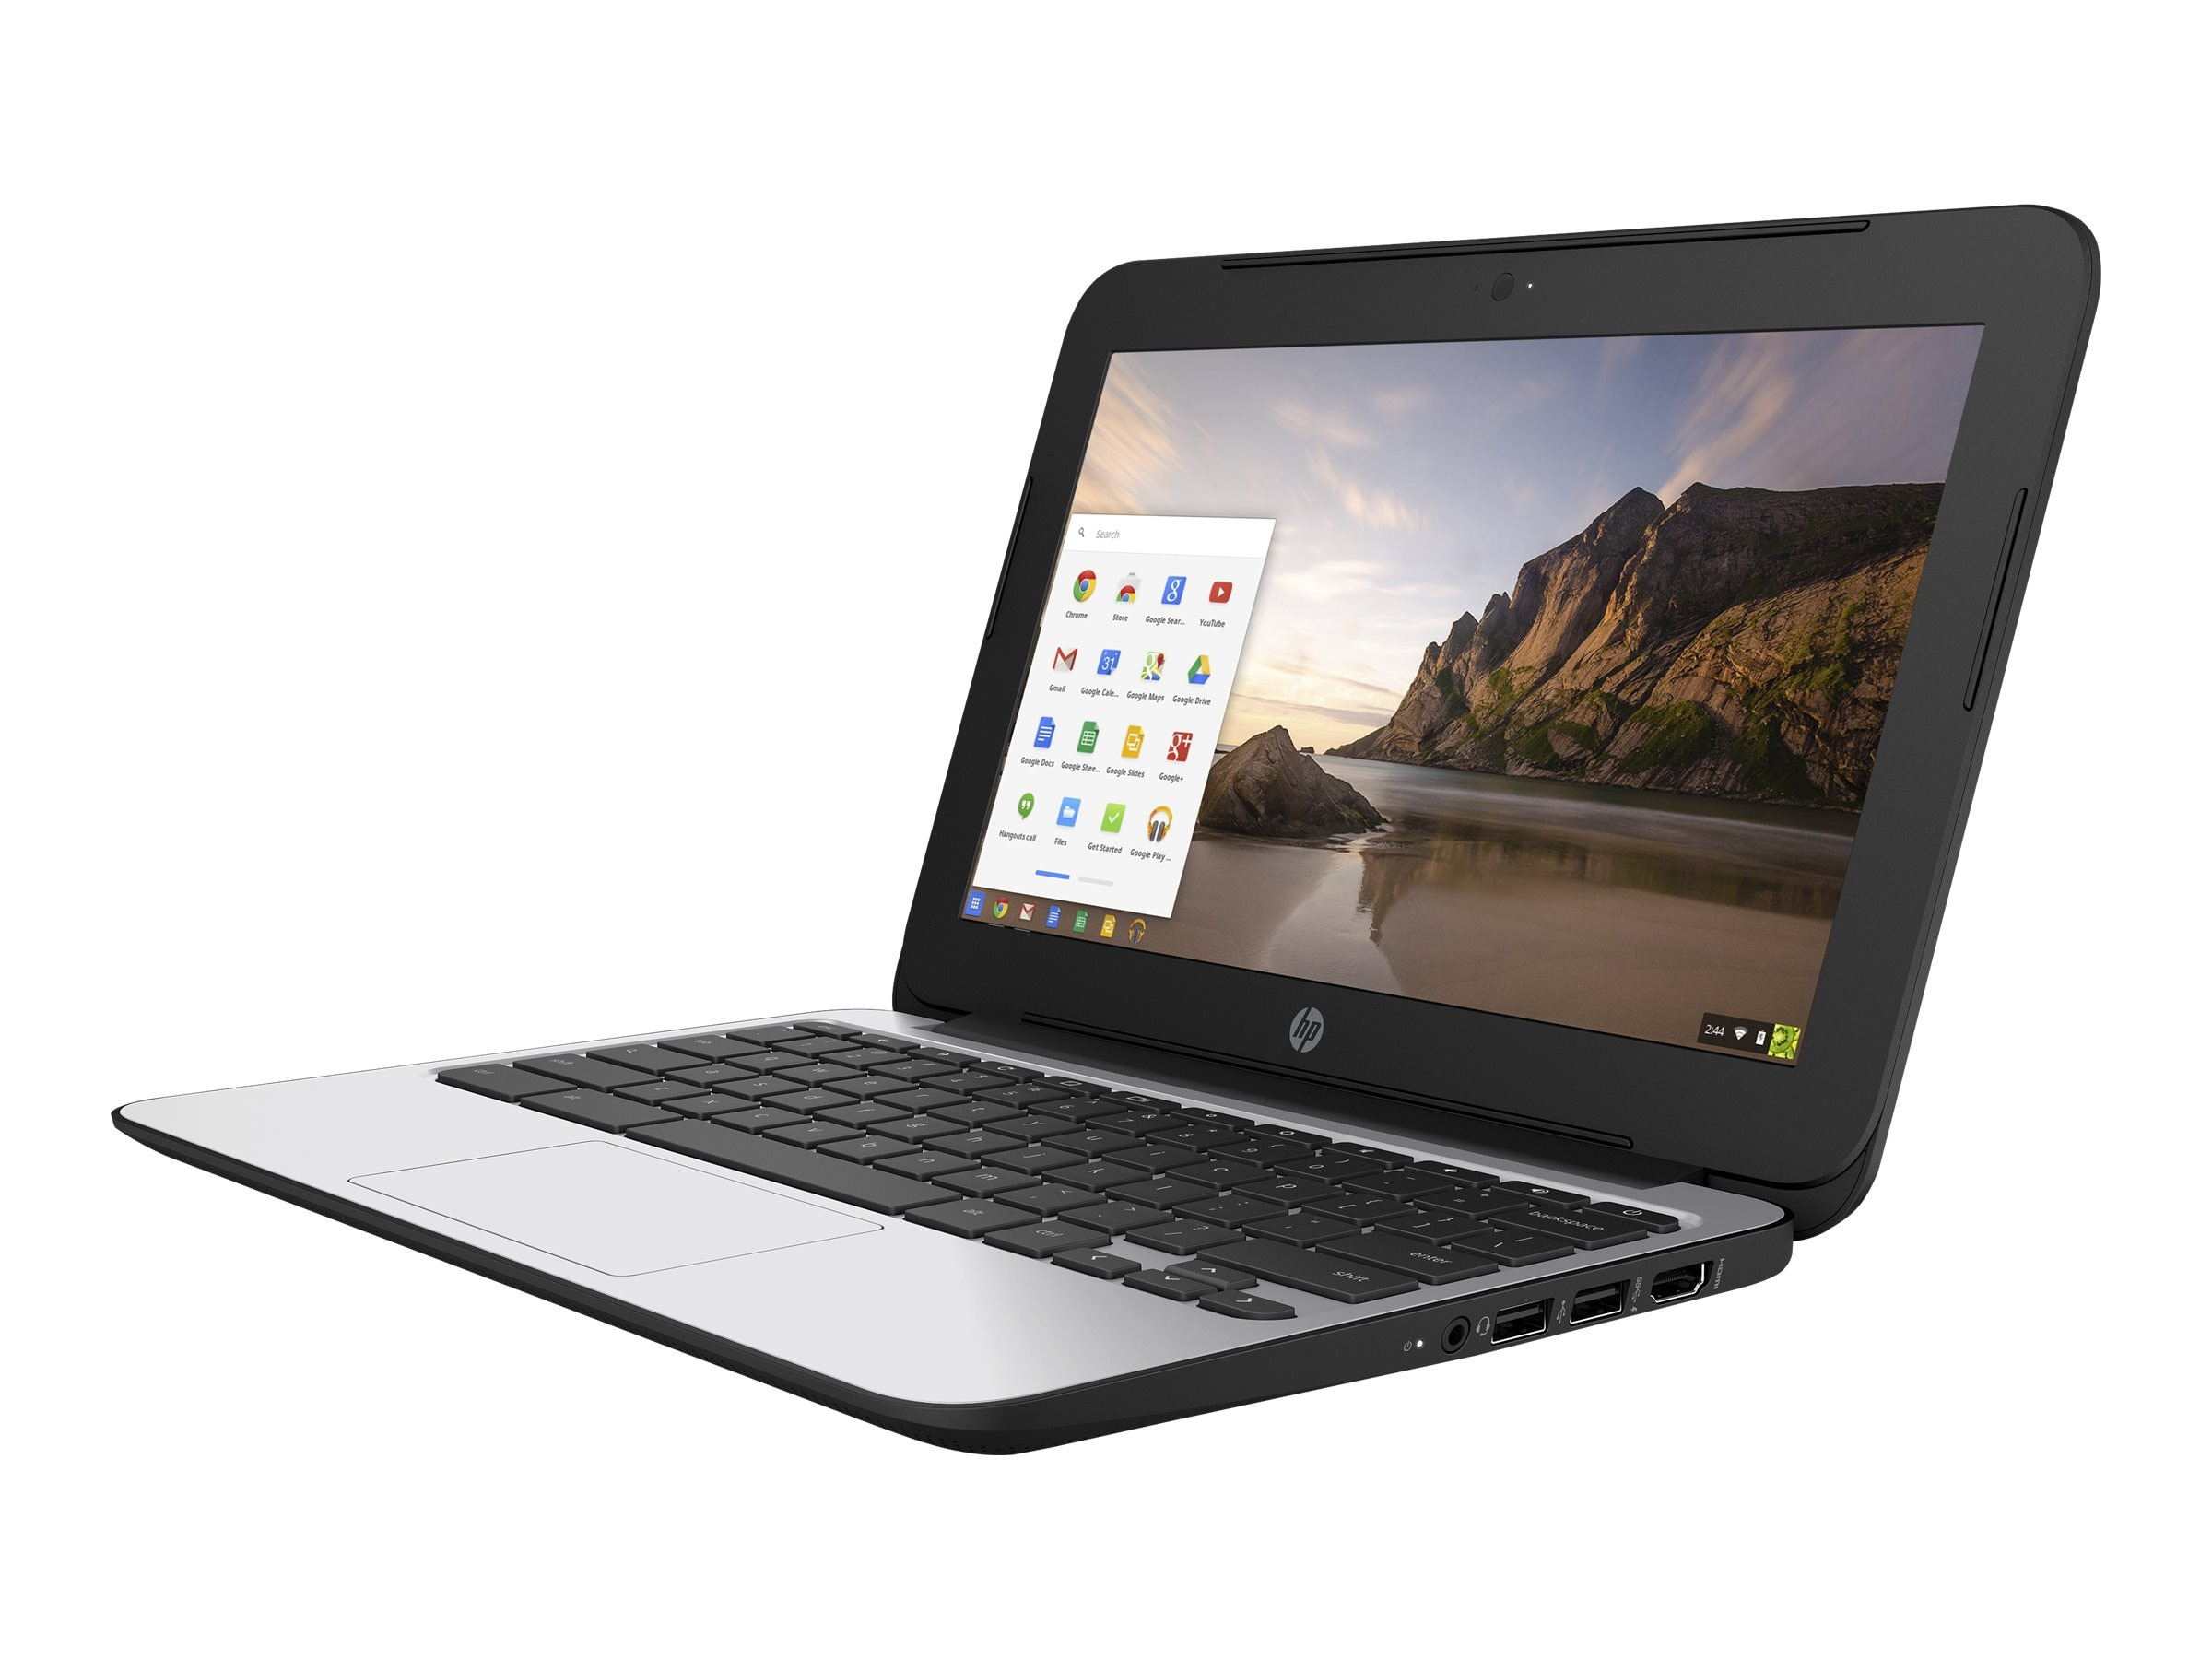 HP Smart Buy Chromebook 11 G4 2.16GHz Celeron 11.6in display, P0B79UT#ABA, 23839917, Notebooks